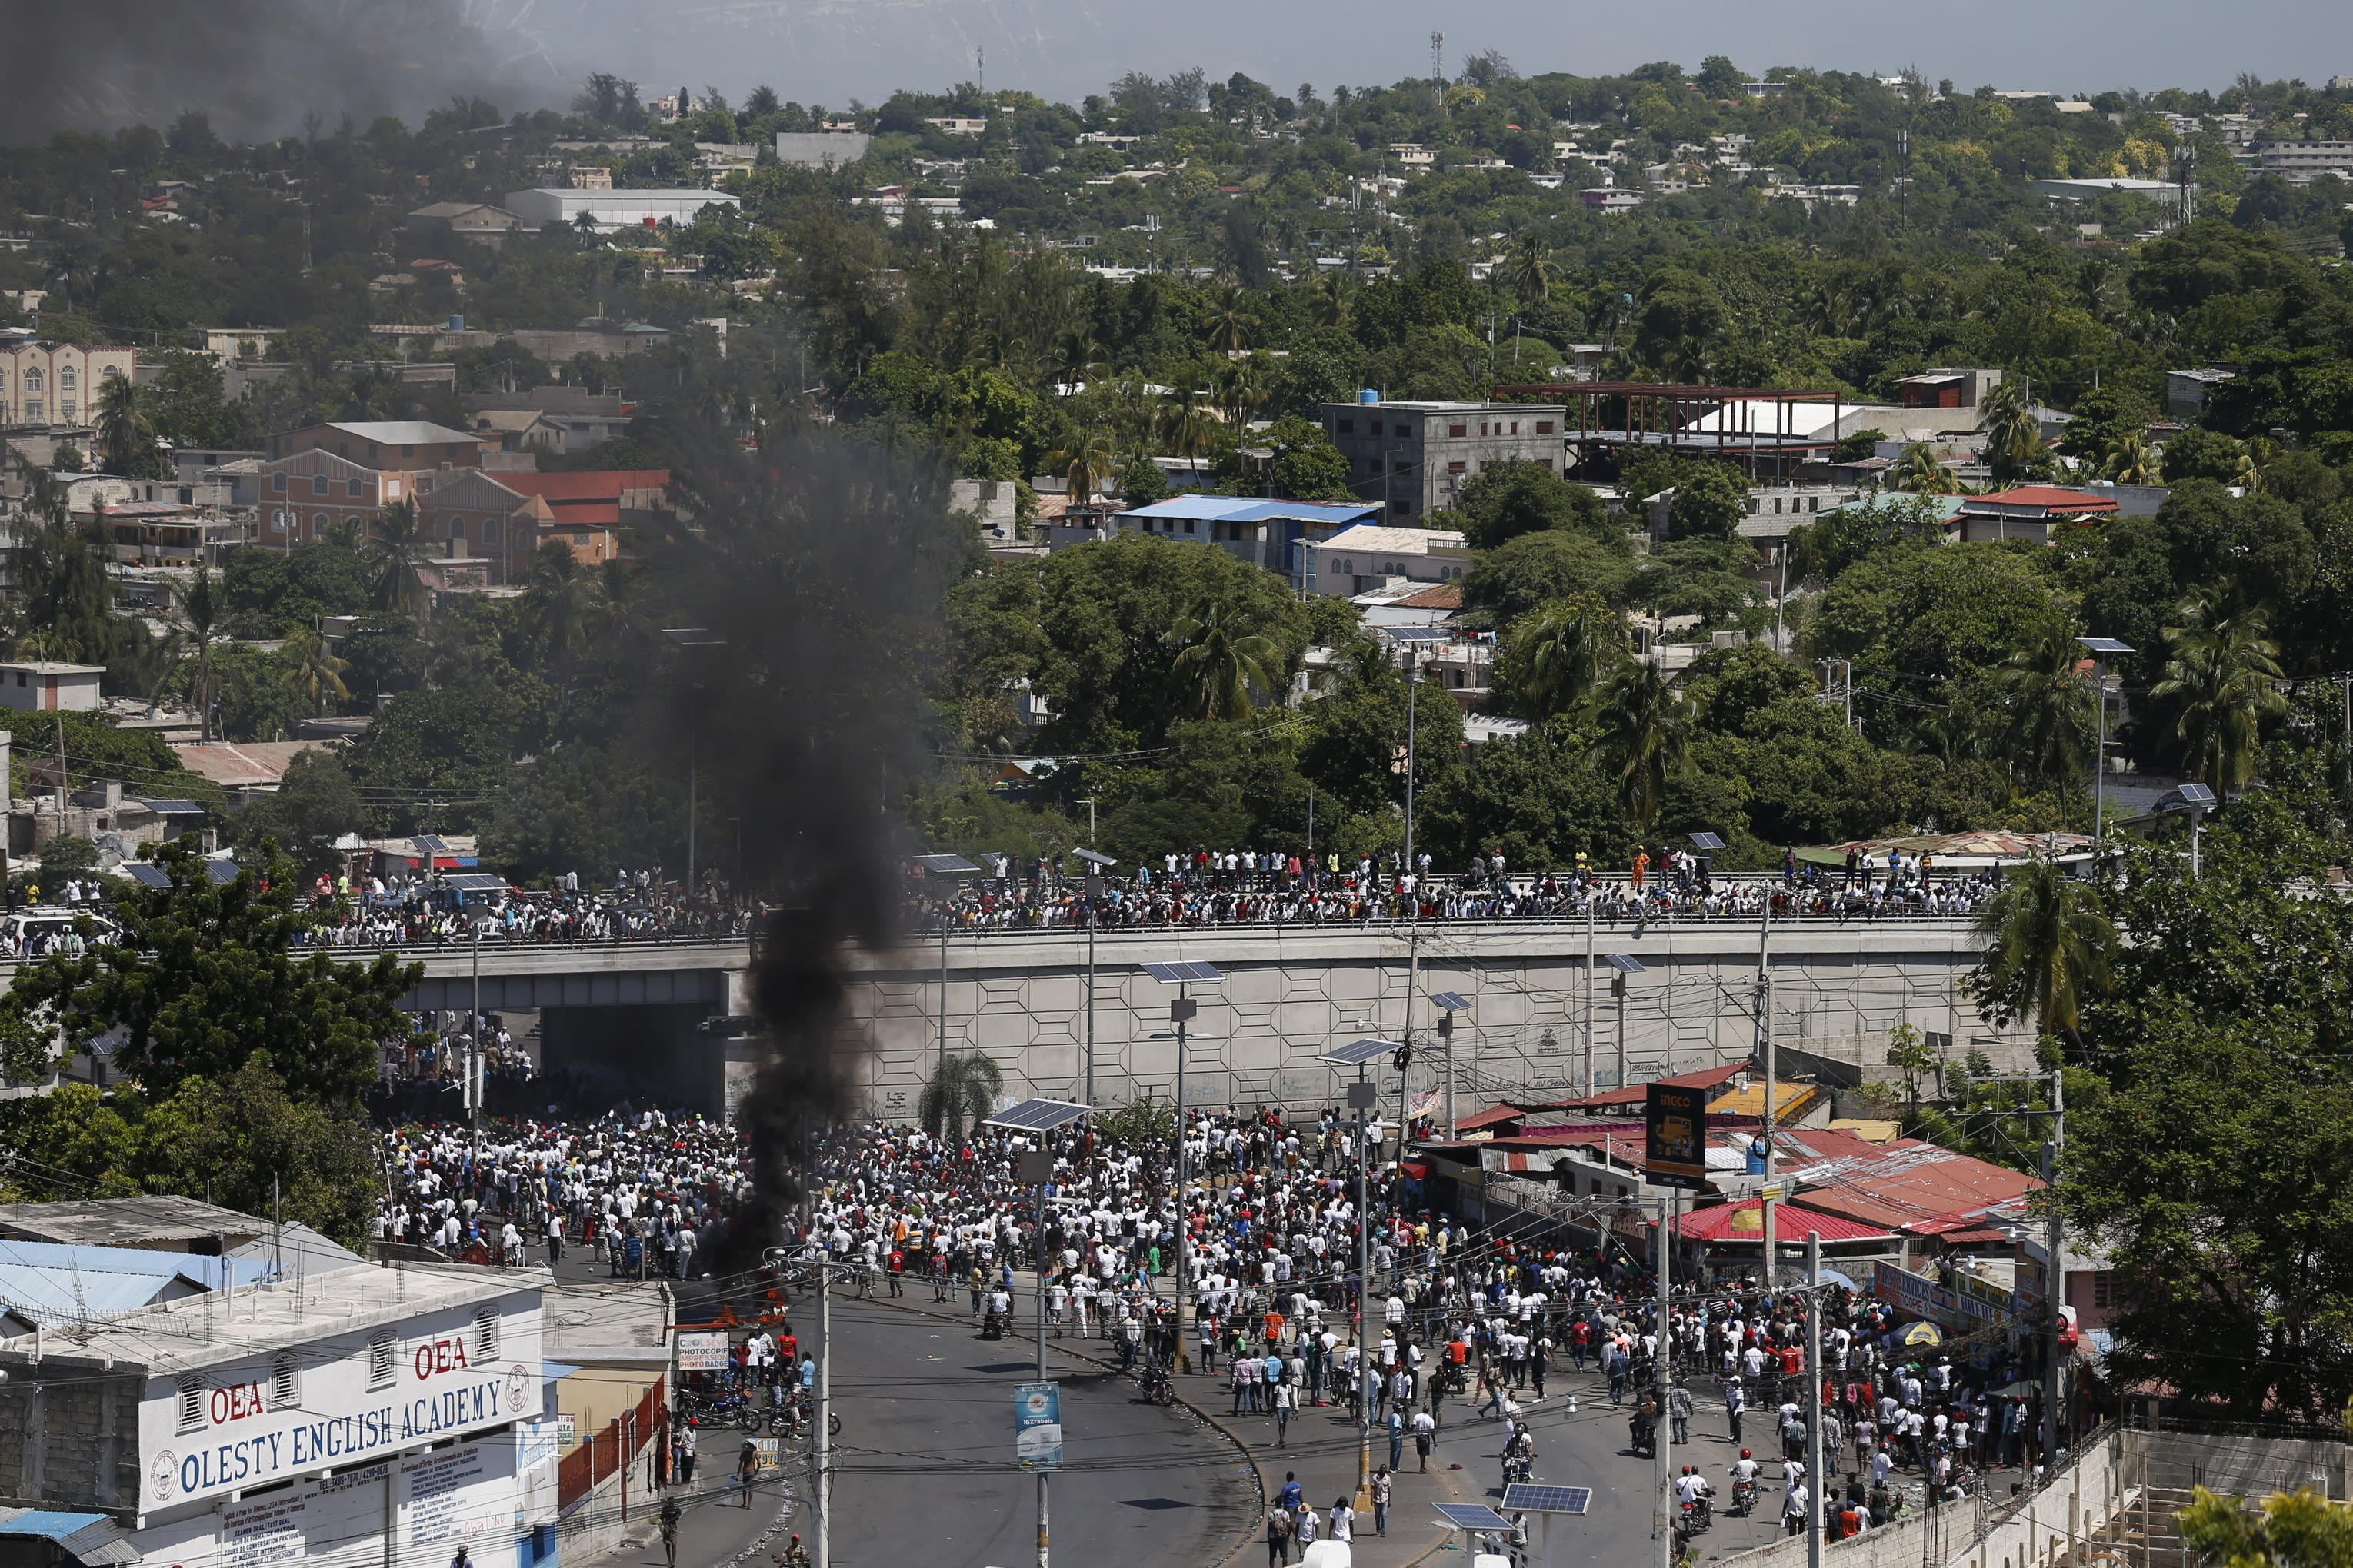 Protesters led by the art community demand the resignation of Haitian President Jovenel Moise as they march through Port-au-Prince, Haiti, some having set debris on fire, Sunday, Oct. 13, 2019. Protests have paralyzed the country for nearly a month, shuttering businesses and schools. (AP Photo/Rebecca Blackwell)